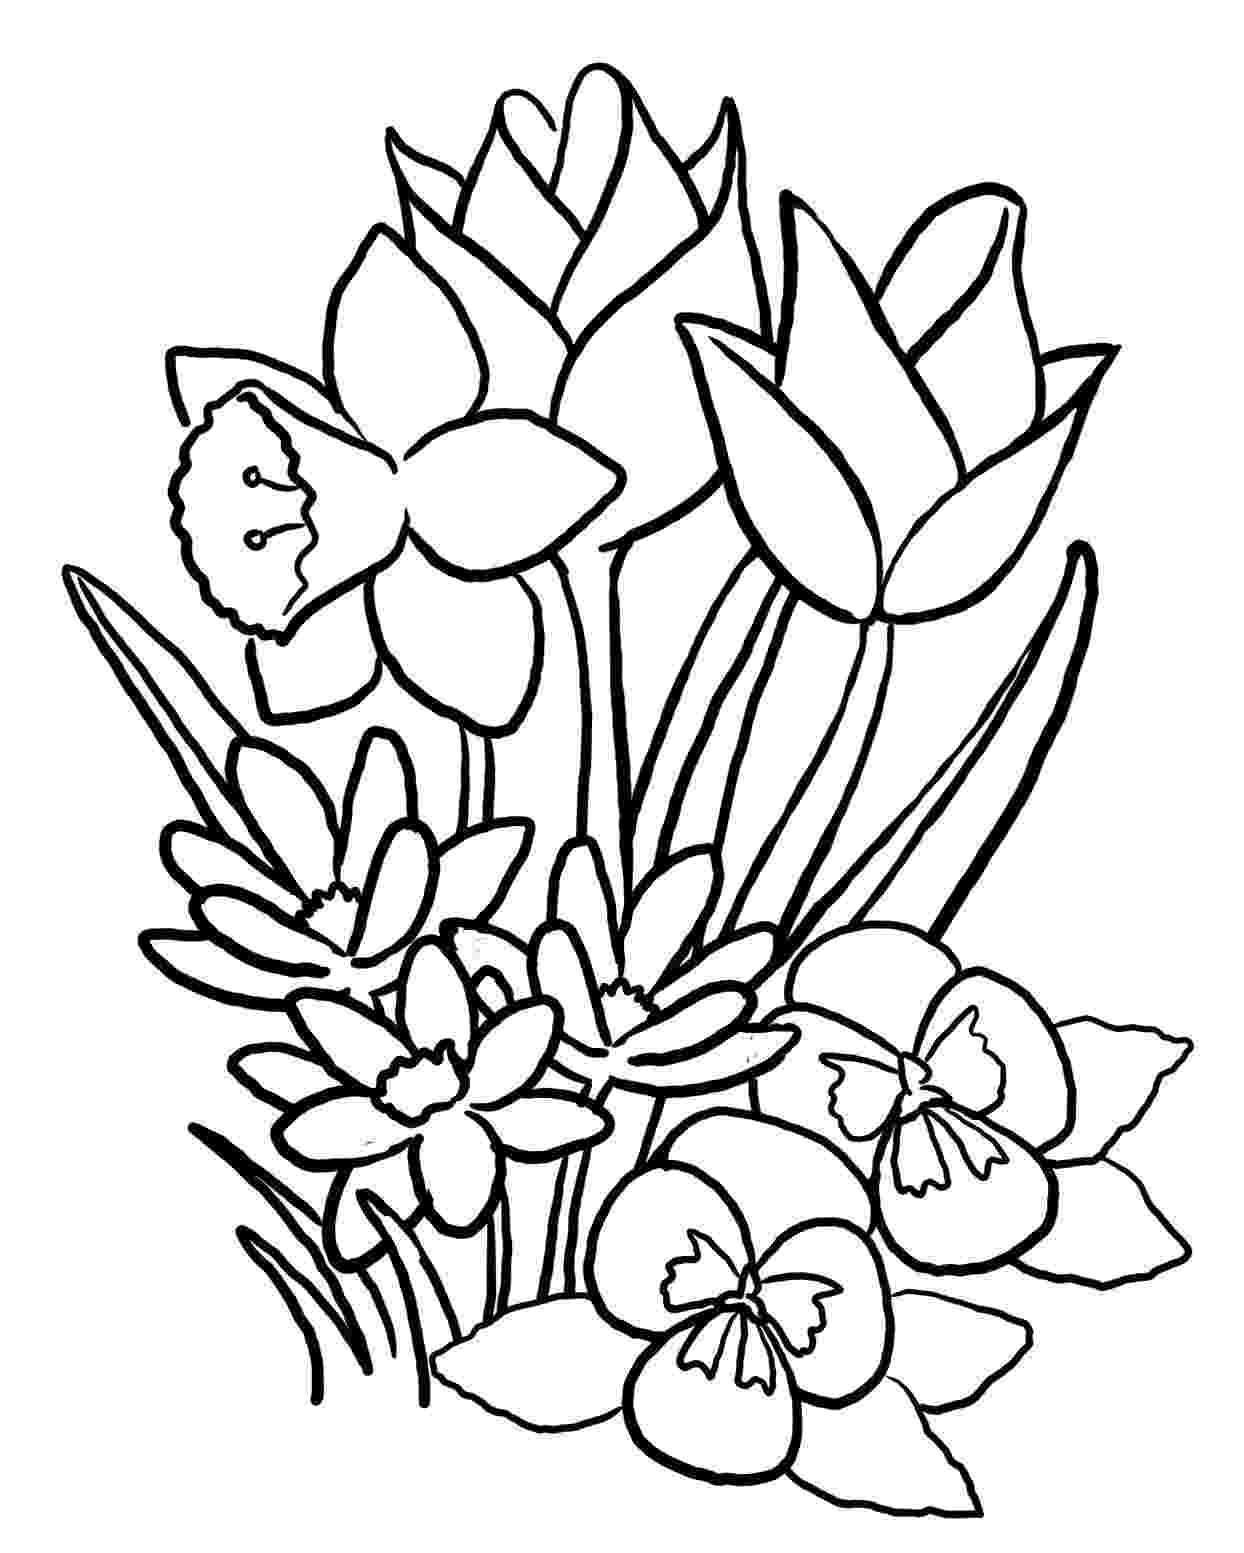 flower pictures to print and color free printable flower coloring pages for kids best to pictures color and flower print